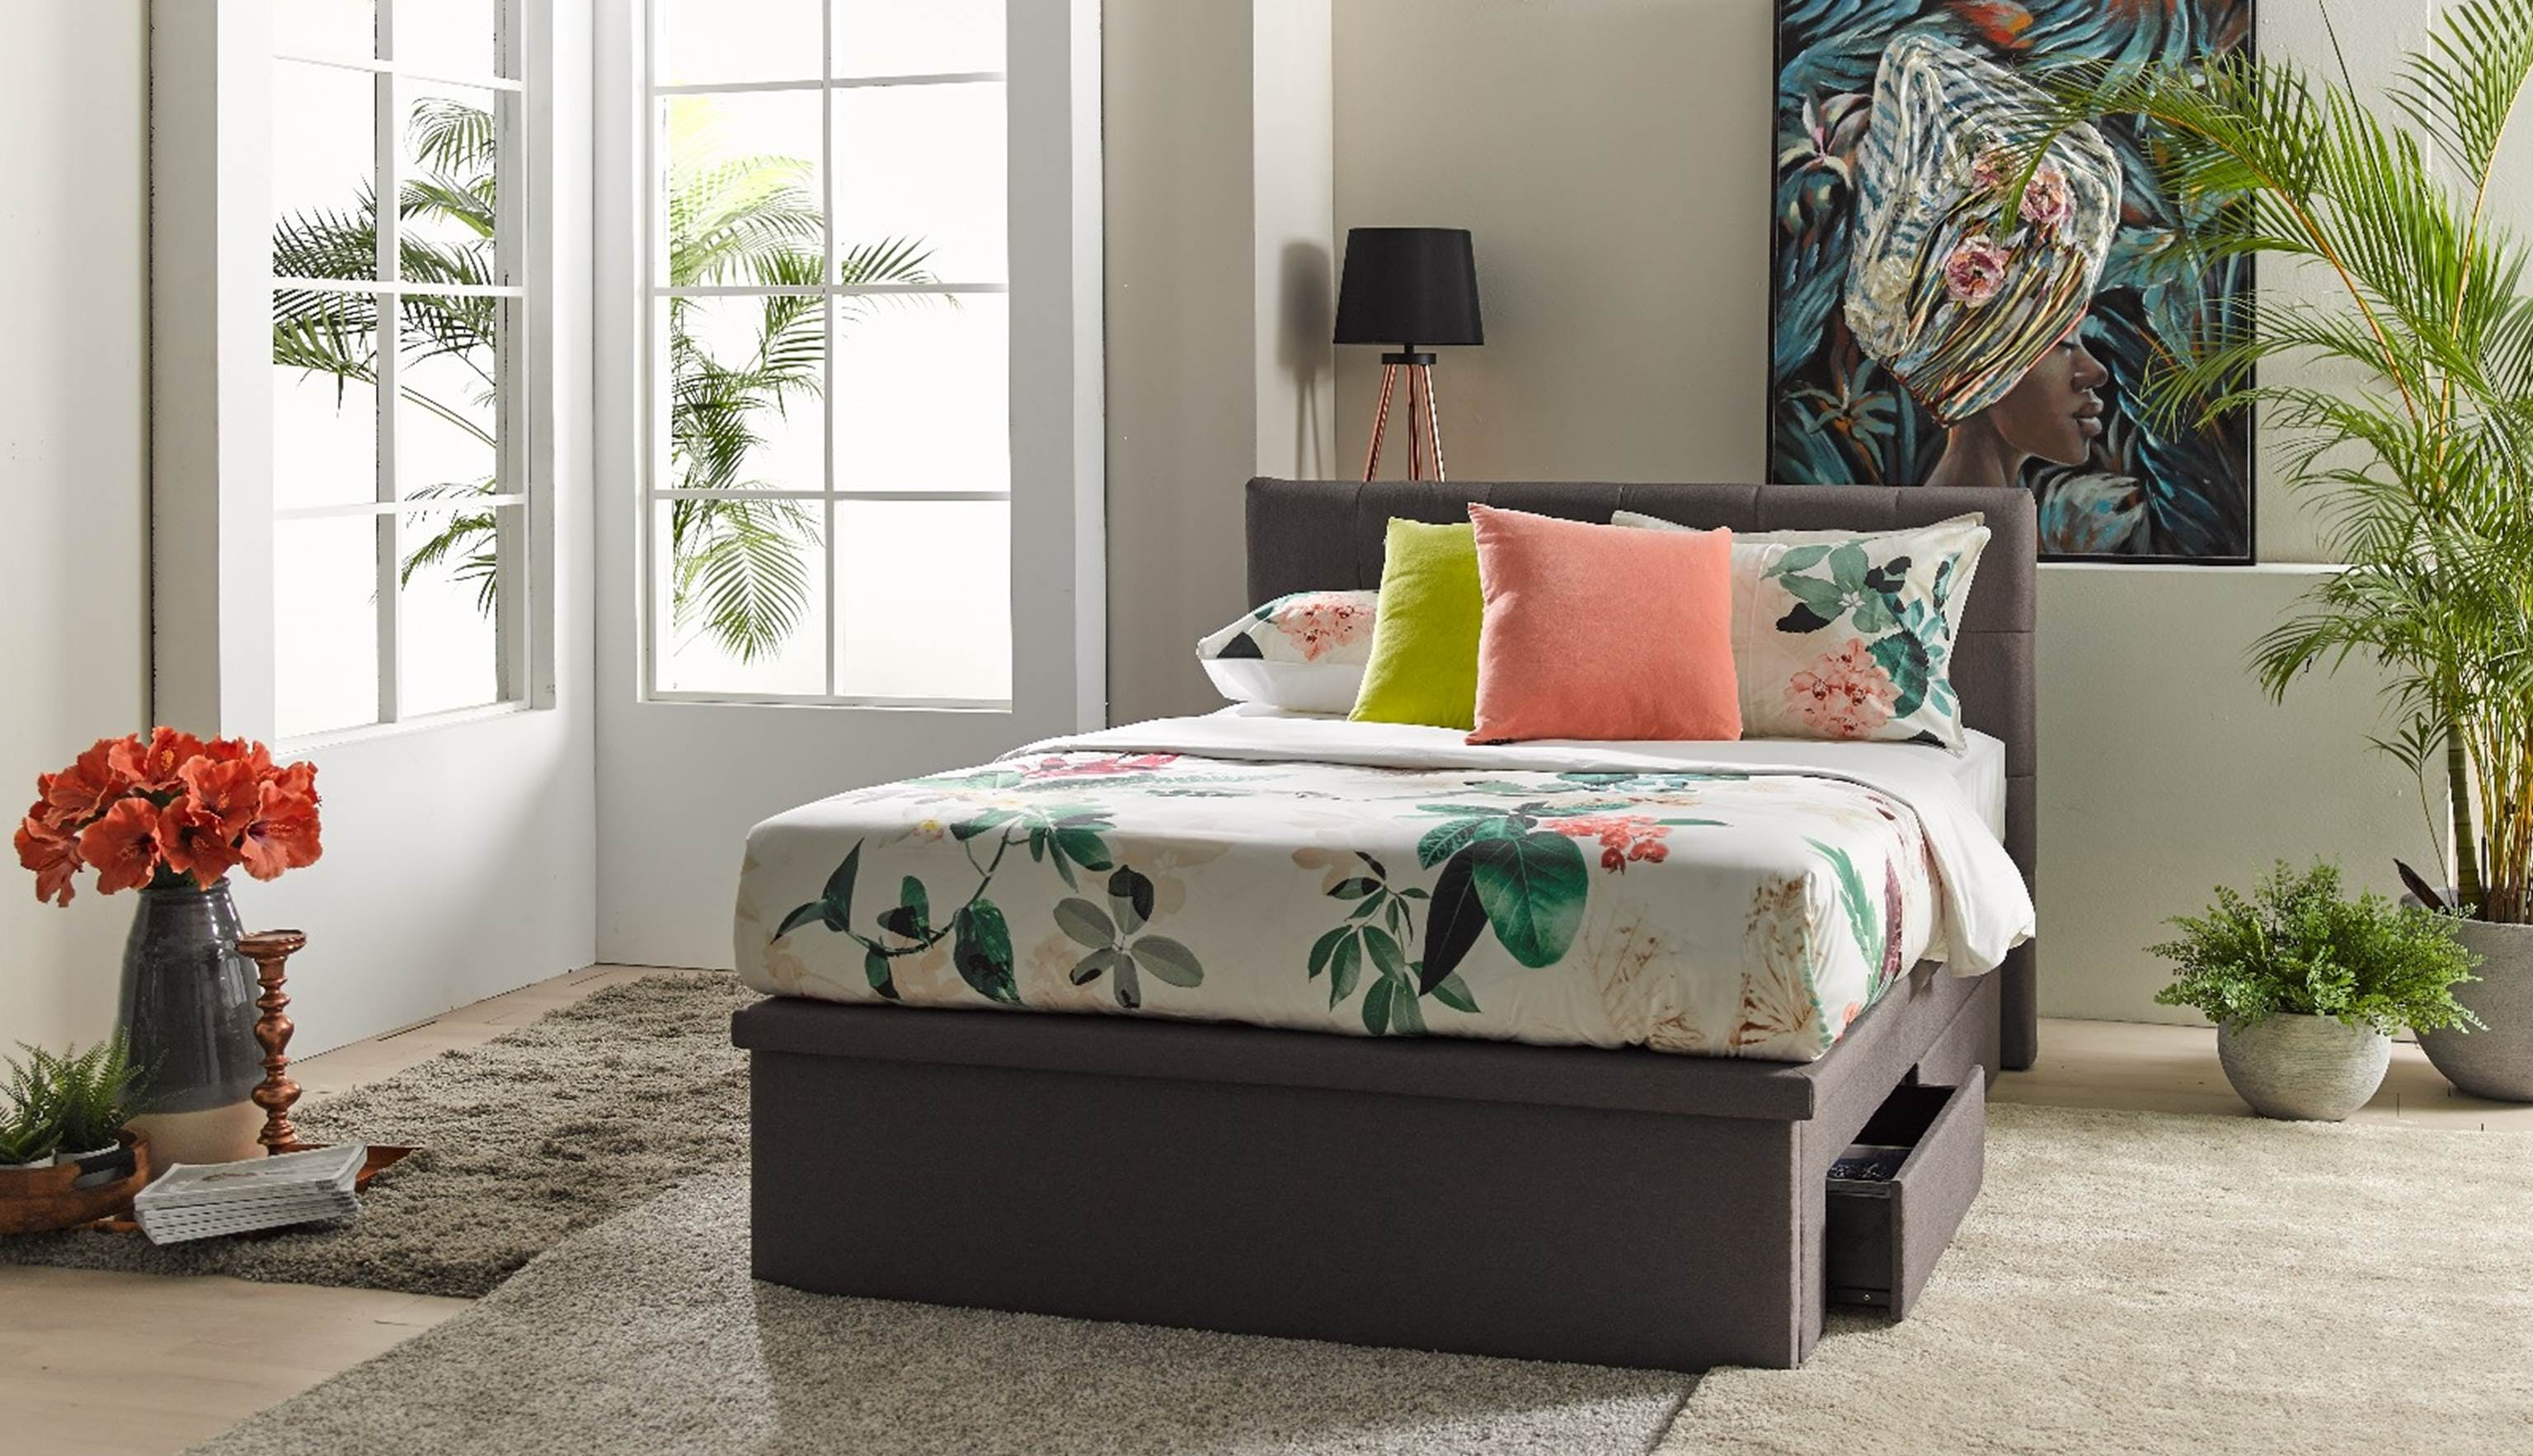 designs platform calmly philippe with queen cherry full then size as bed remarkable storage nice headboard beds ar manly louis bookcase frame underbed furnitures for